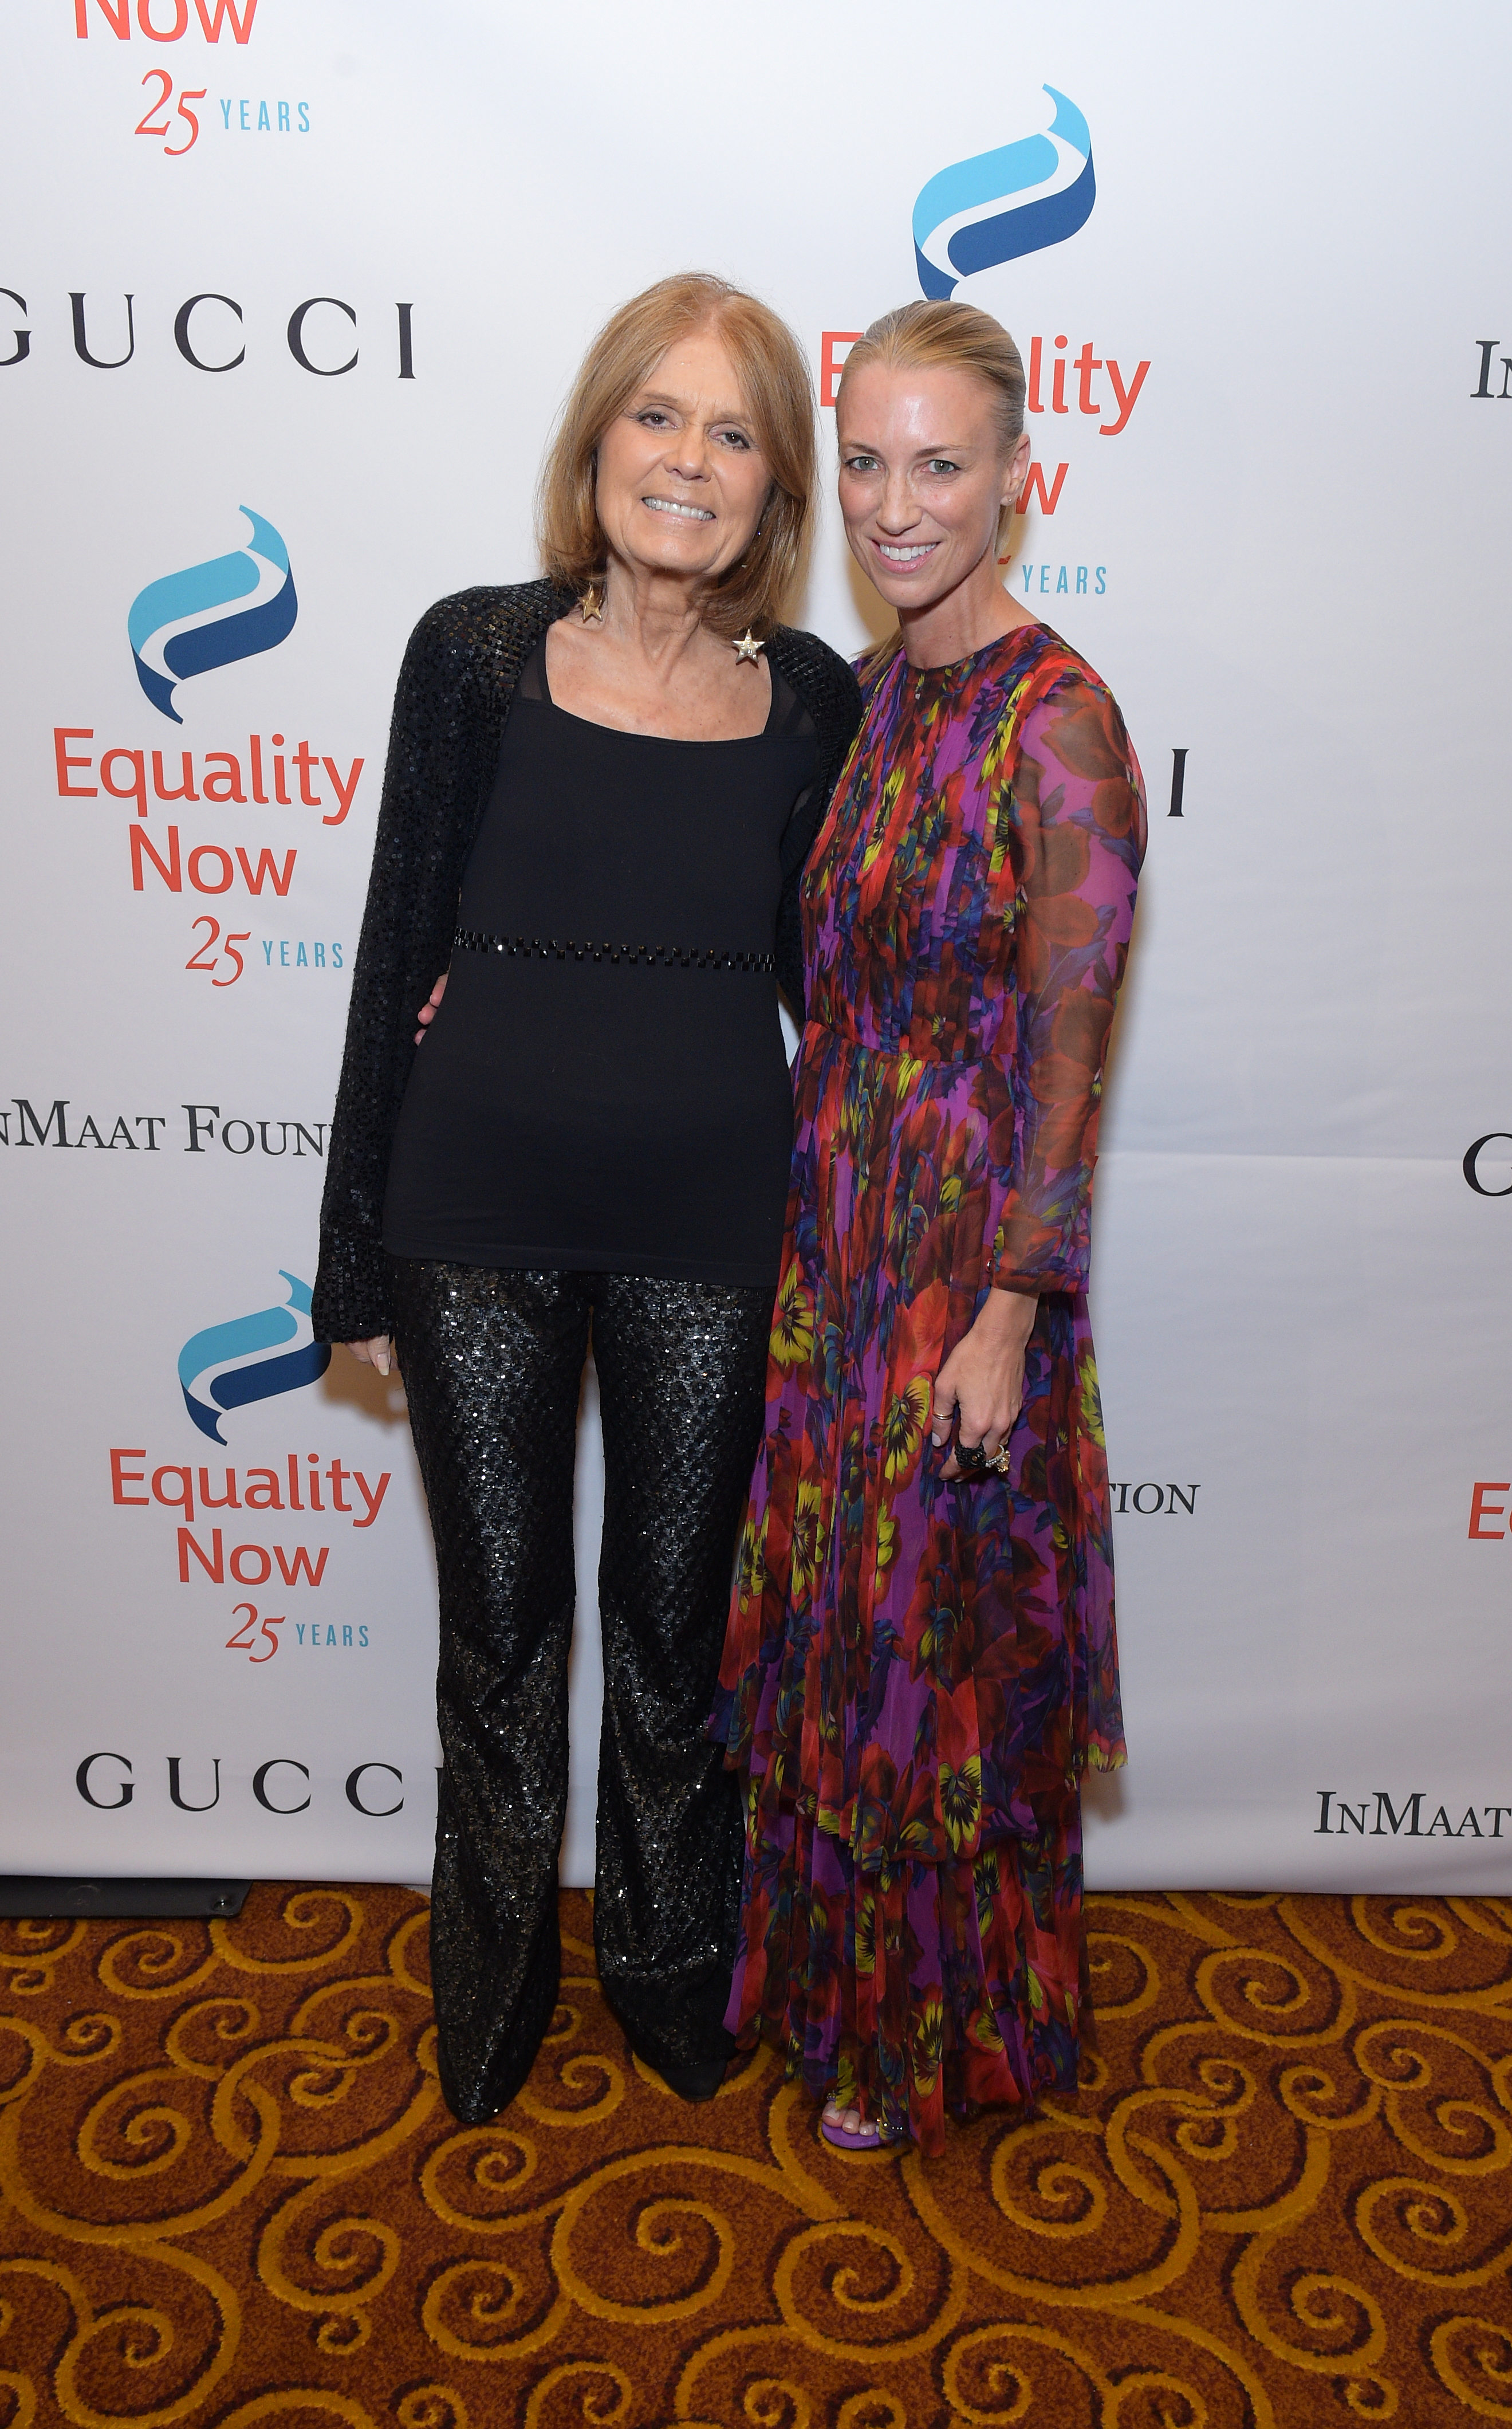 """NEW YORK, NY - OCTOBER 30:   Gala Co-Chair Gloria Steinem and  Honoree, President and CEO, Gucci America Susan Chokachi  attends as Equality Now celebrates 25th Anniversary at """"Make Equality Reality"""" Gala at Gotham Hall on October 30, 2017 in New York City.  (Photo by Jason Kempin/Getty Images for Equality Now)"""